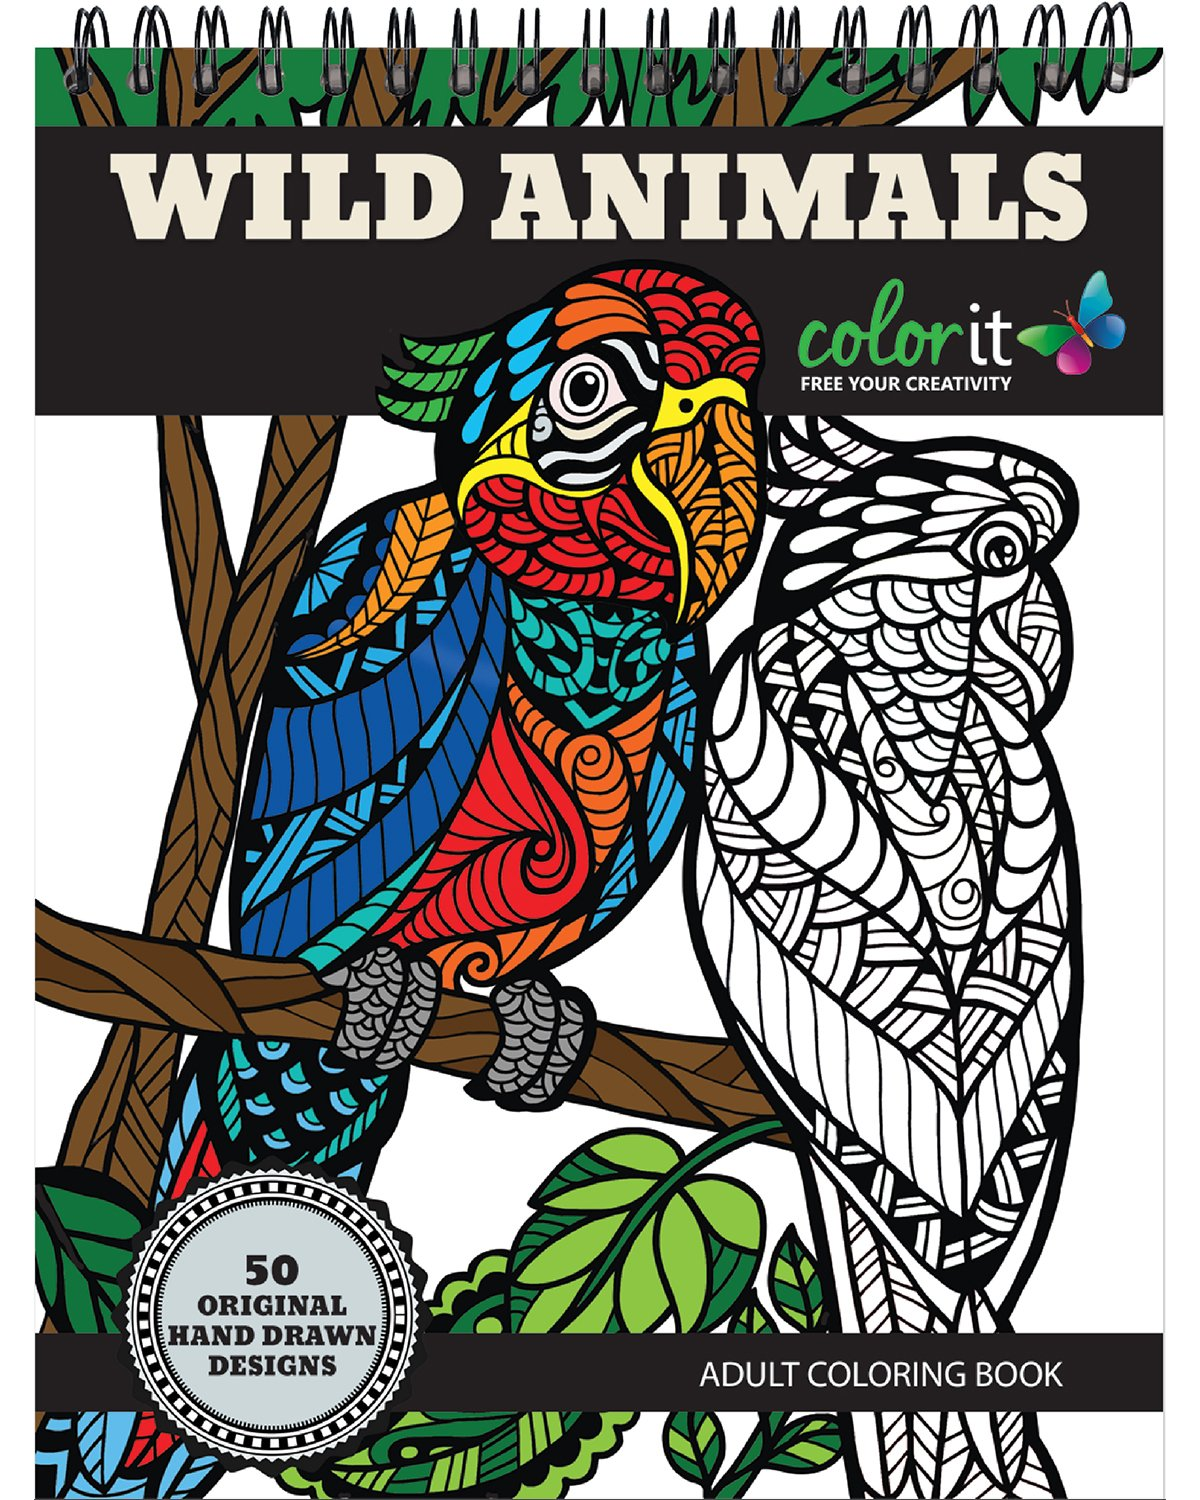 Wild Animals Adult Coloring Book product image